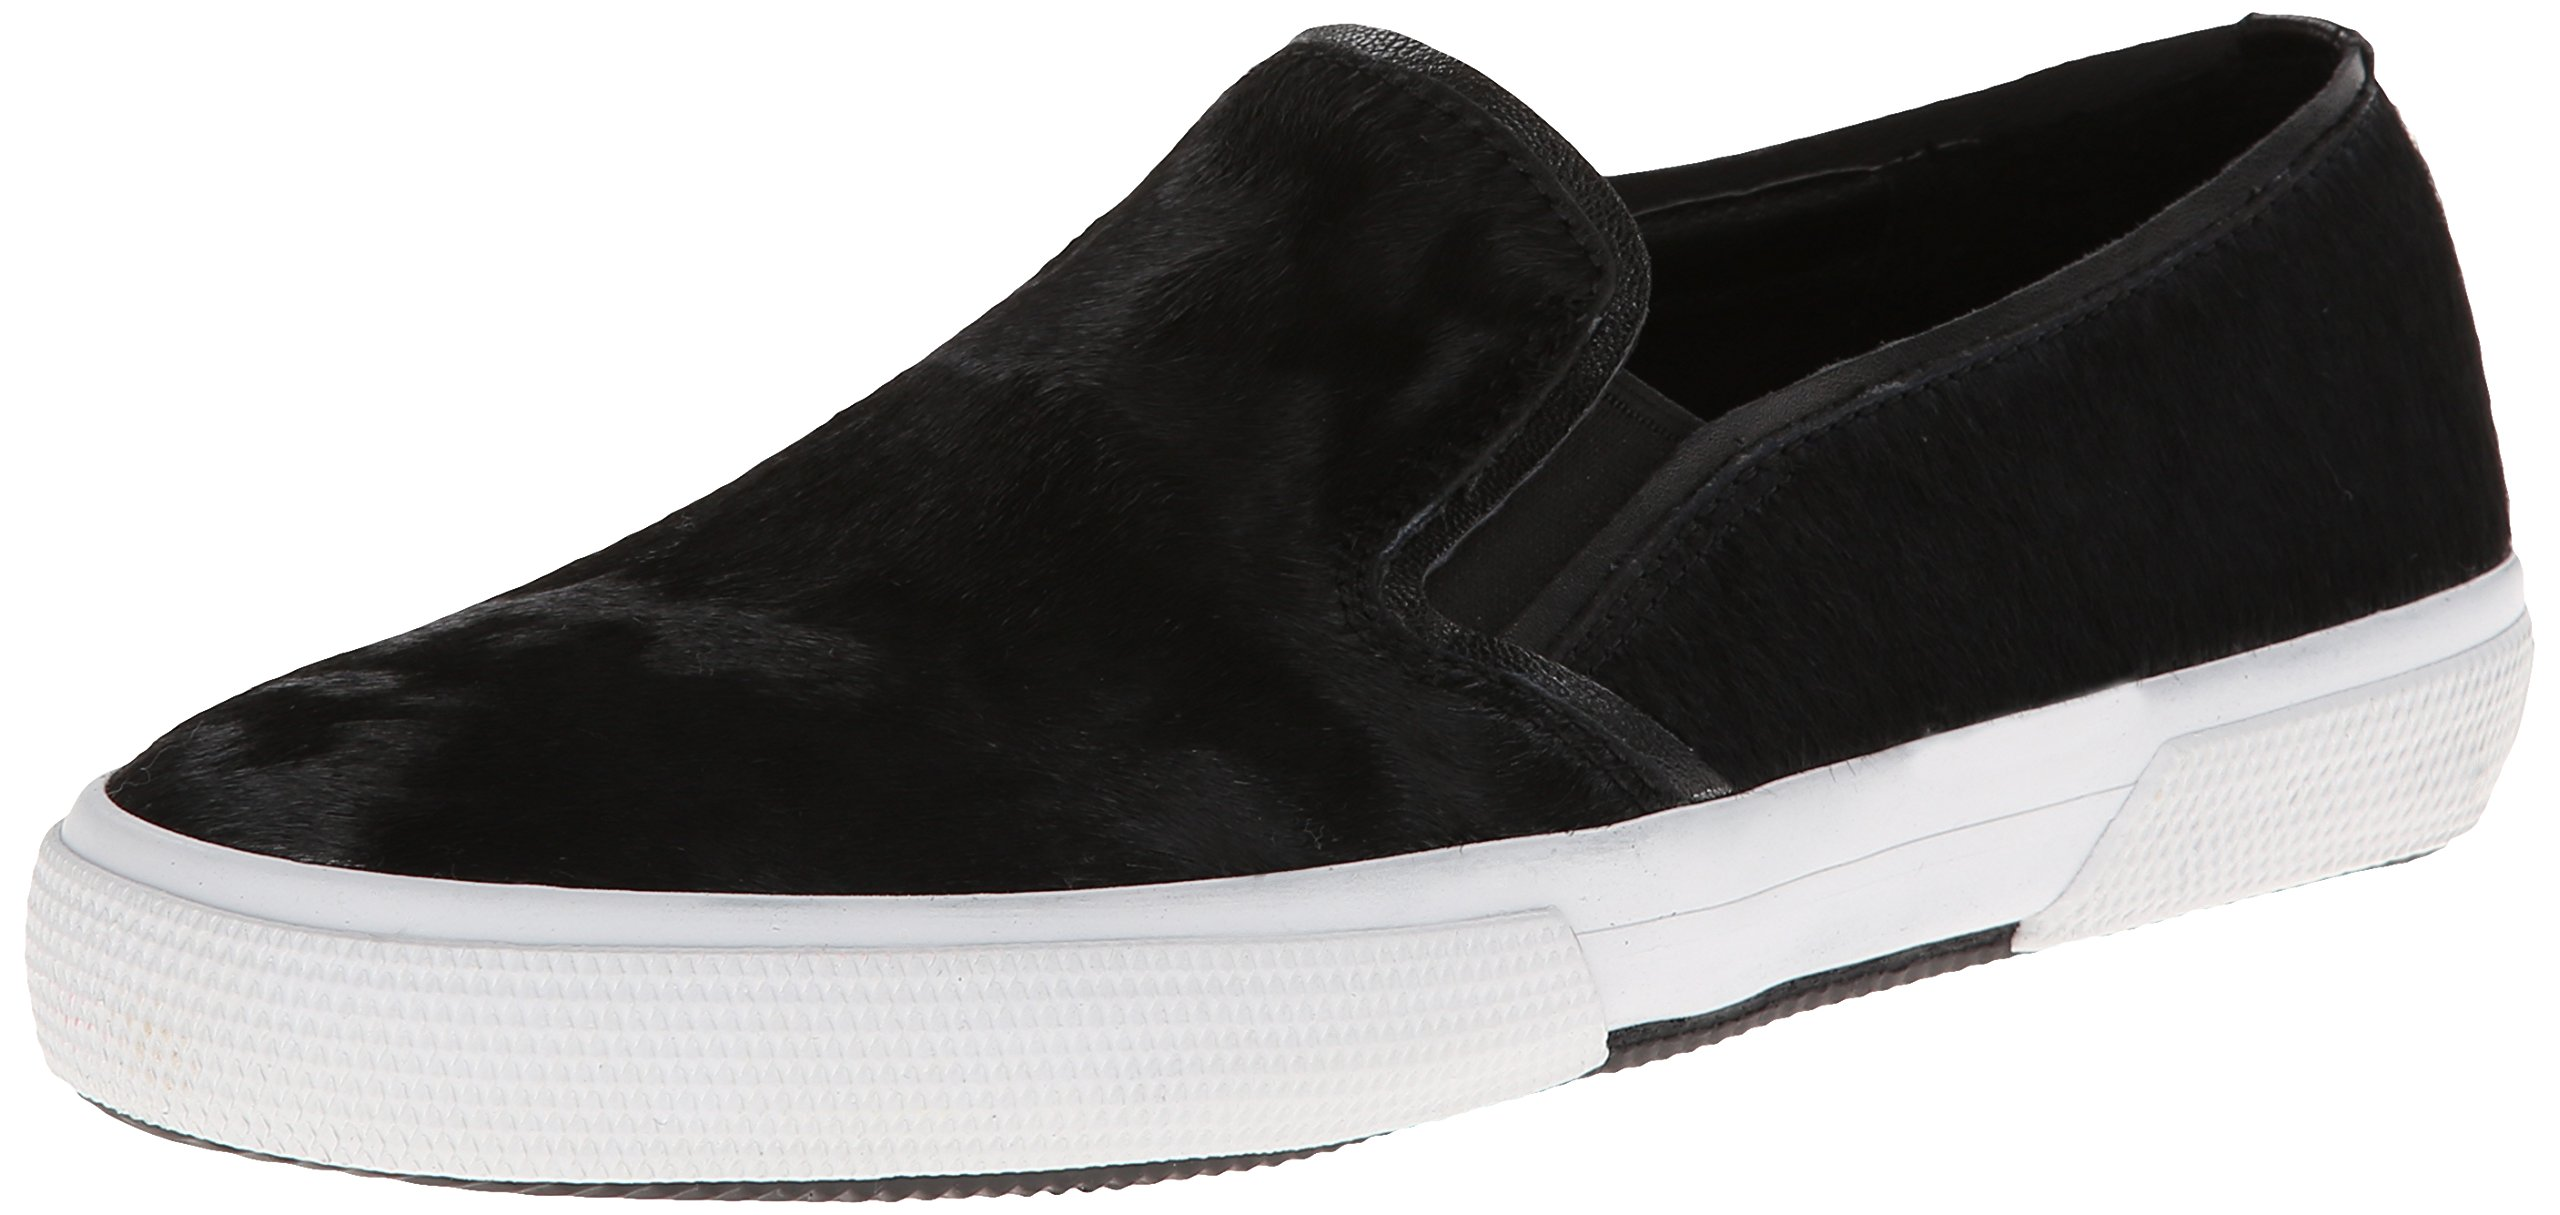 Kenneth Cole REACTION Women's Salt N Pep Fashion Sneaker